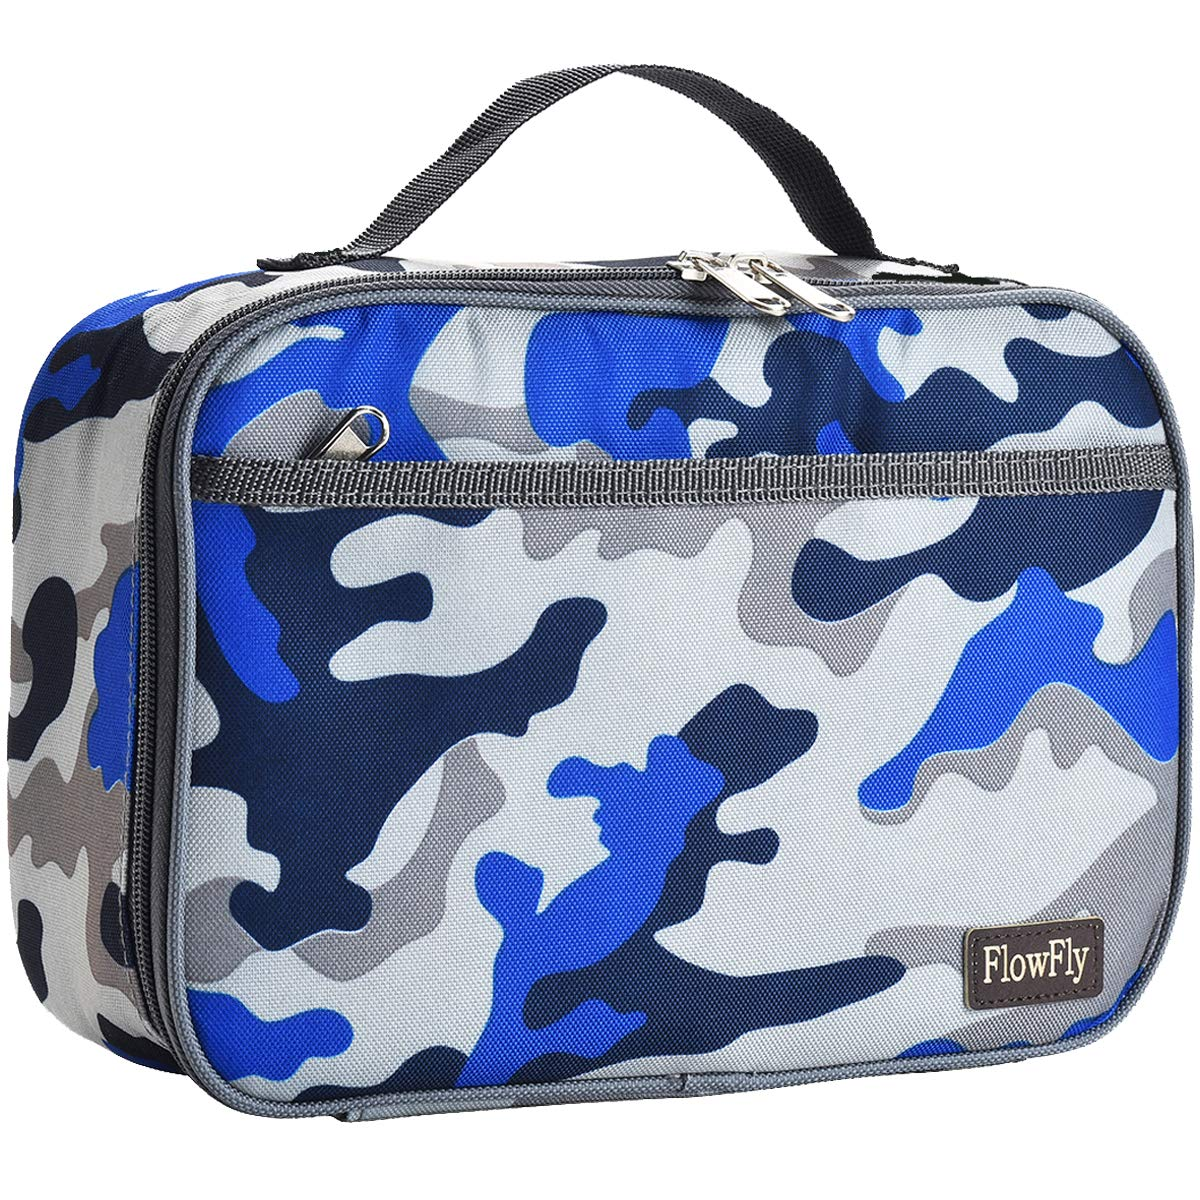 Kids Lunch box Insulated Soft Bag Mini Cooler Thermal Meal Tote Kit with Handle and Pocket for Girls, Boys by FlowFly,Blue Camo by FlowFly